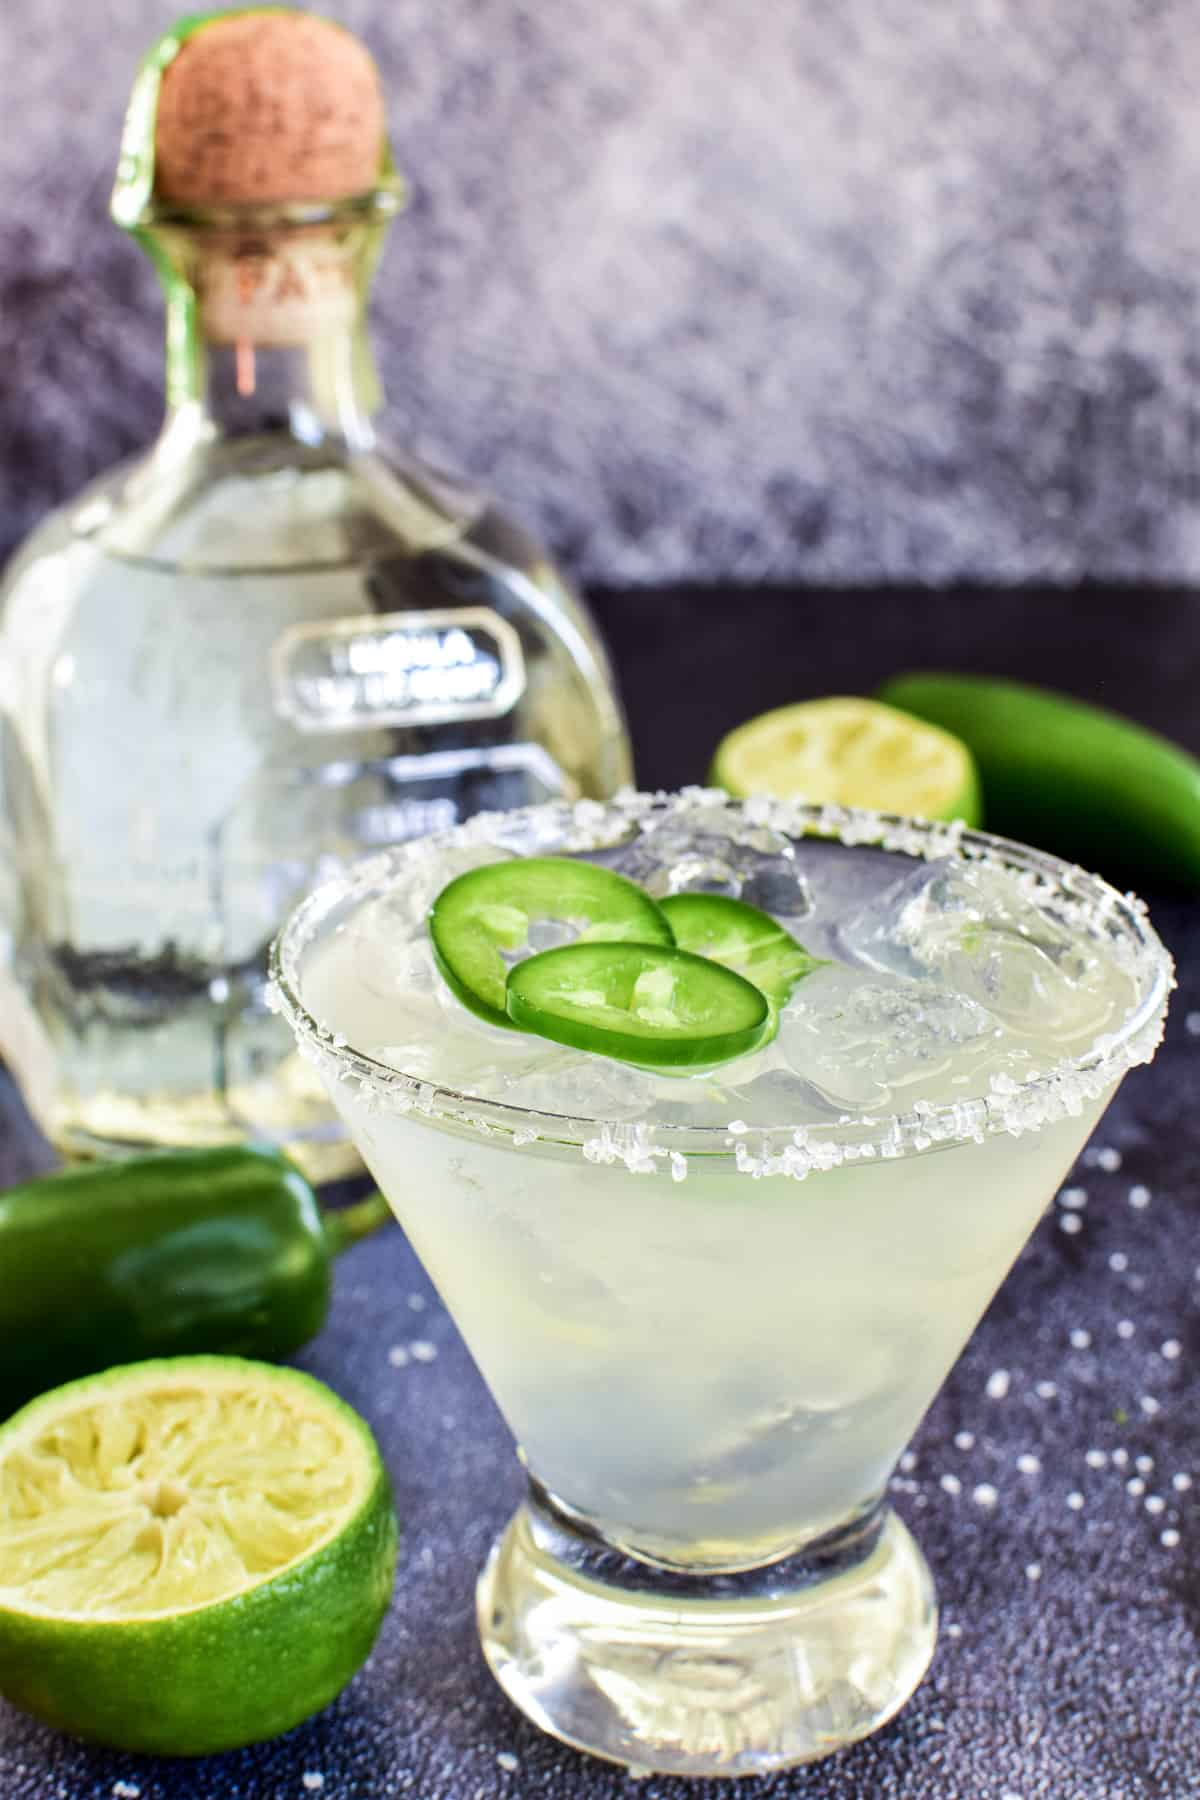 Closeup of Jalapeño Margarita with fresh sliced jalapeños